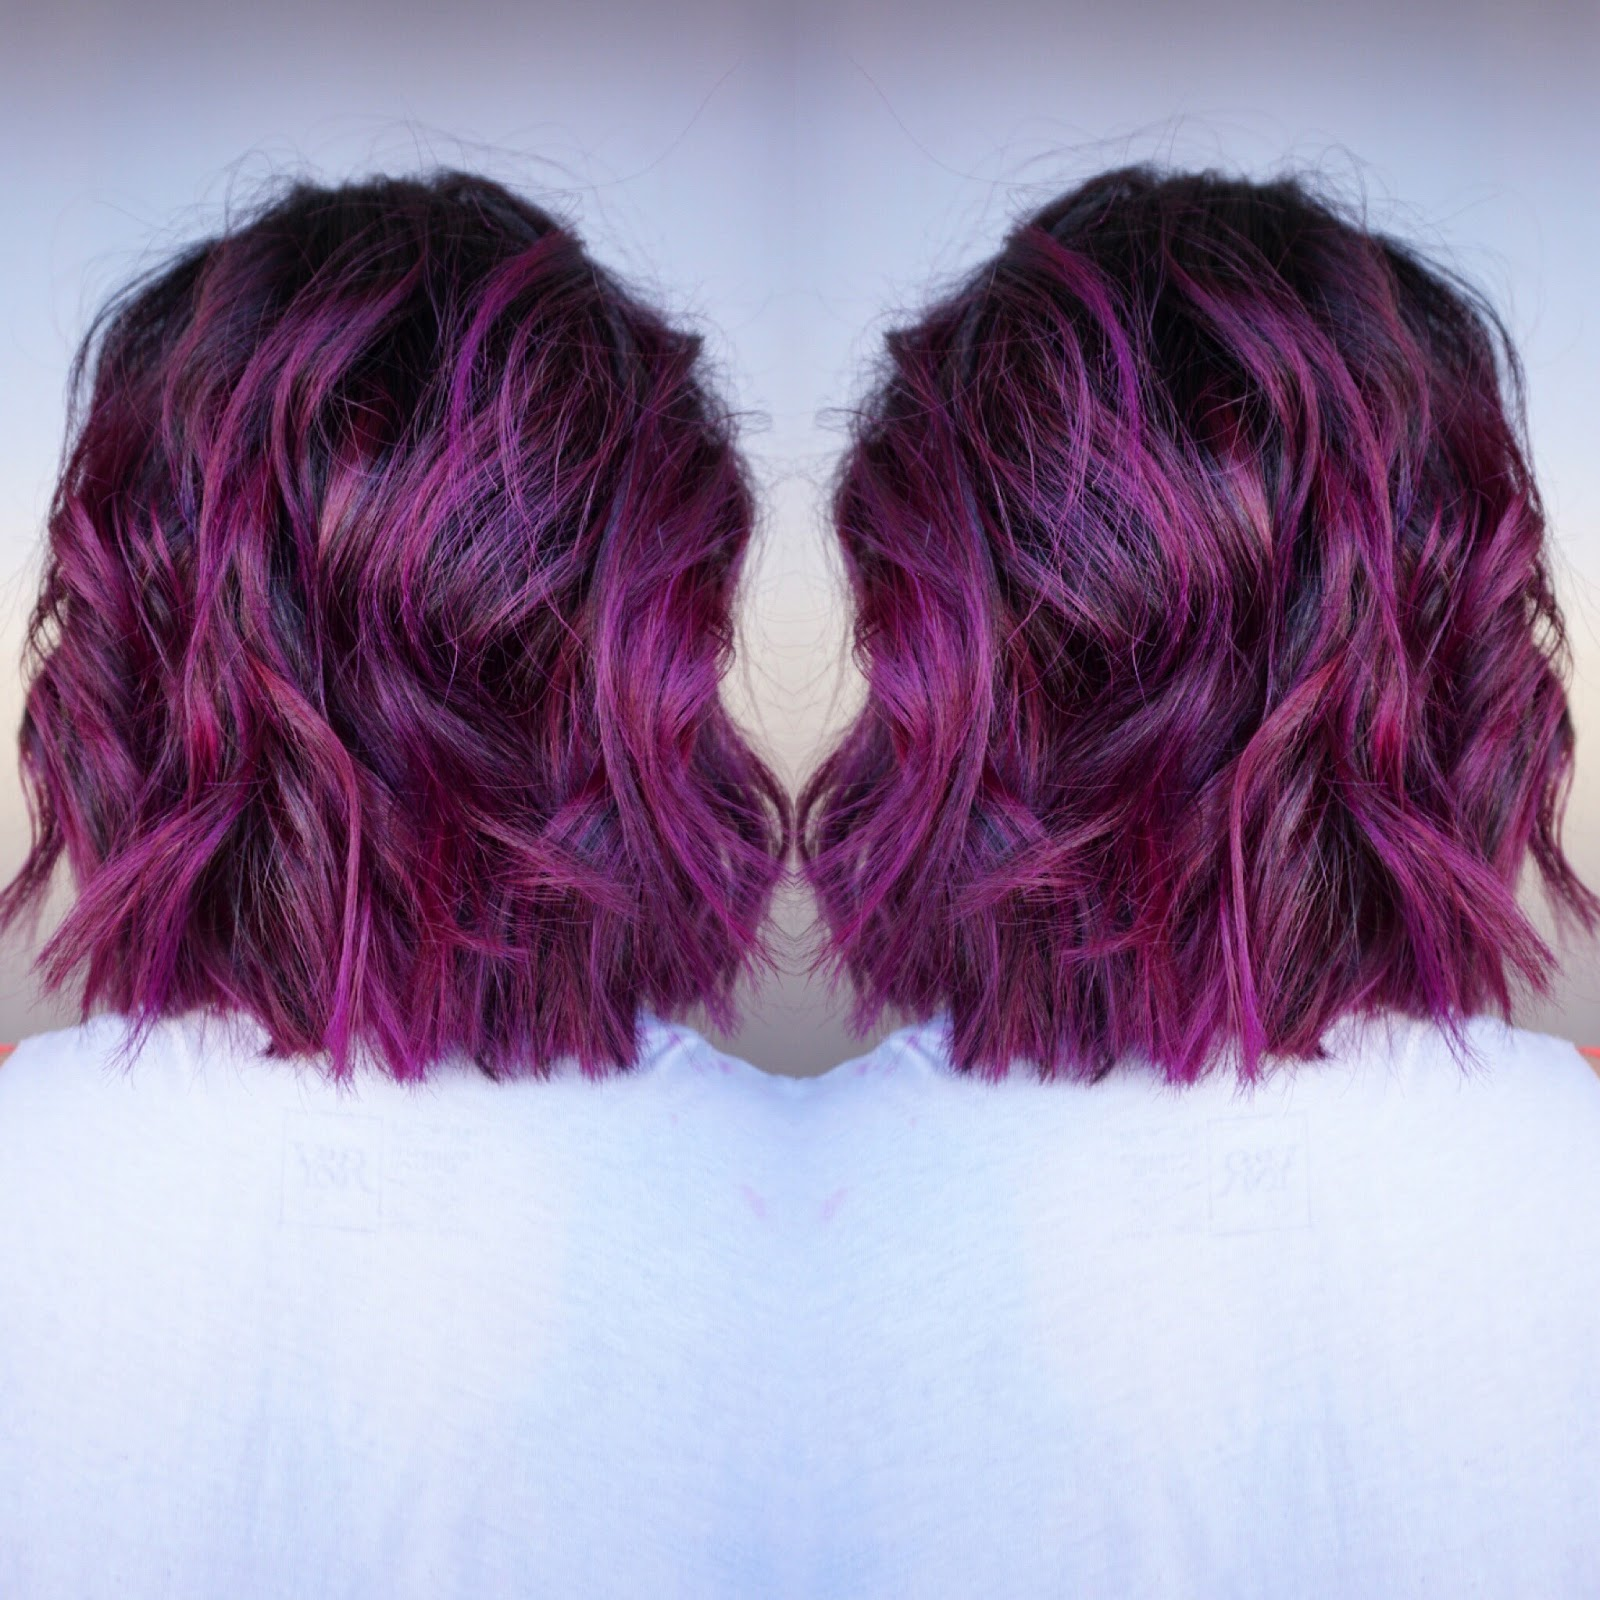 Very Bold Heavy Balayage I Did This Just So Her Purple Color Would POP